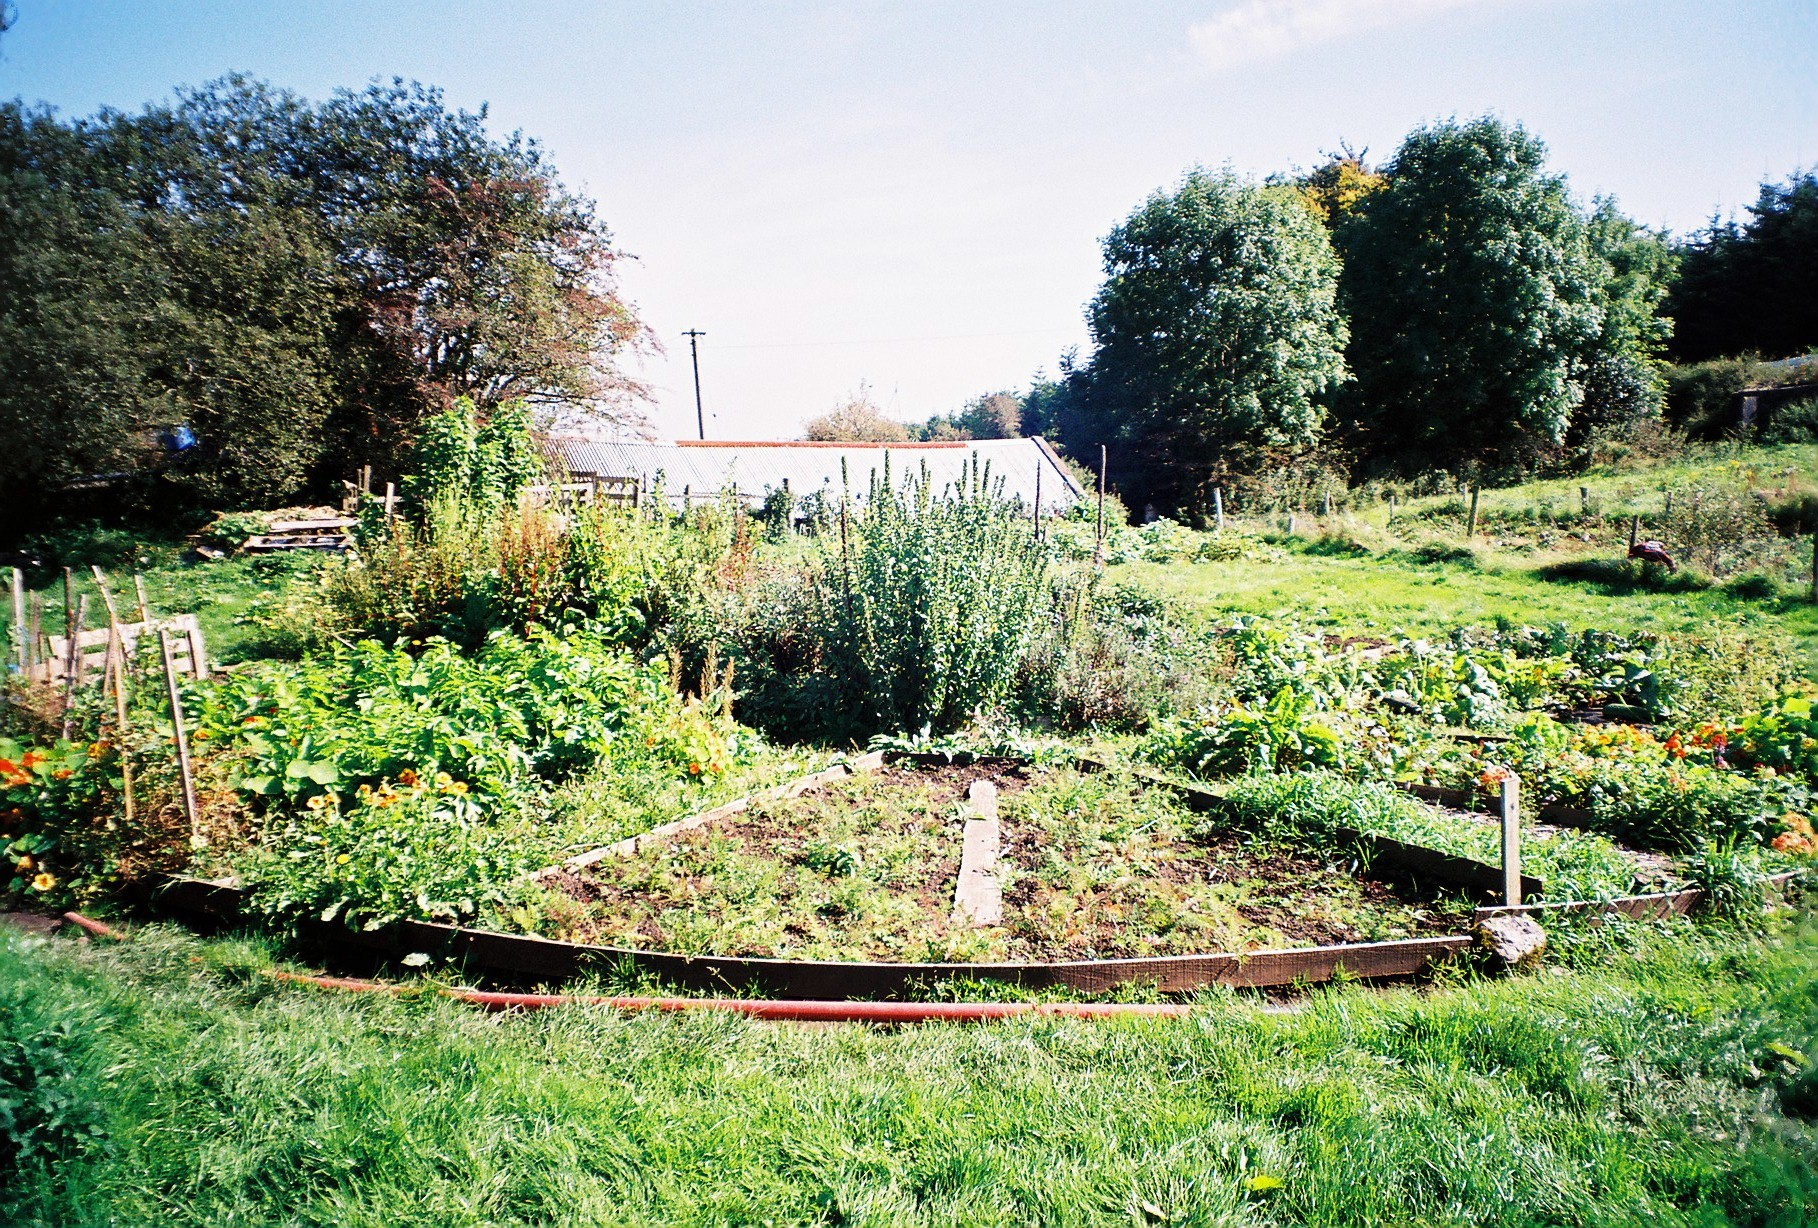 patches of vegetables and flowers